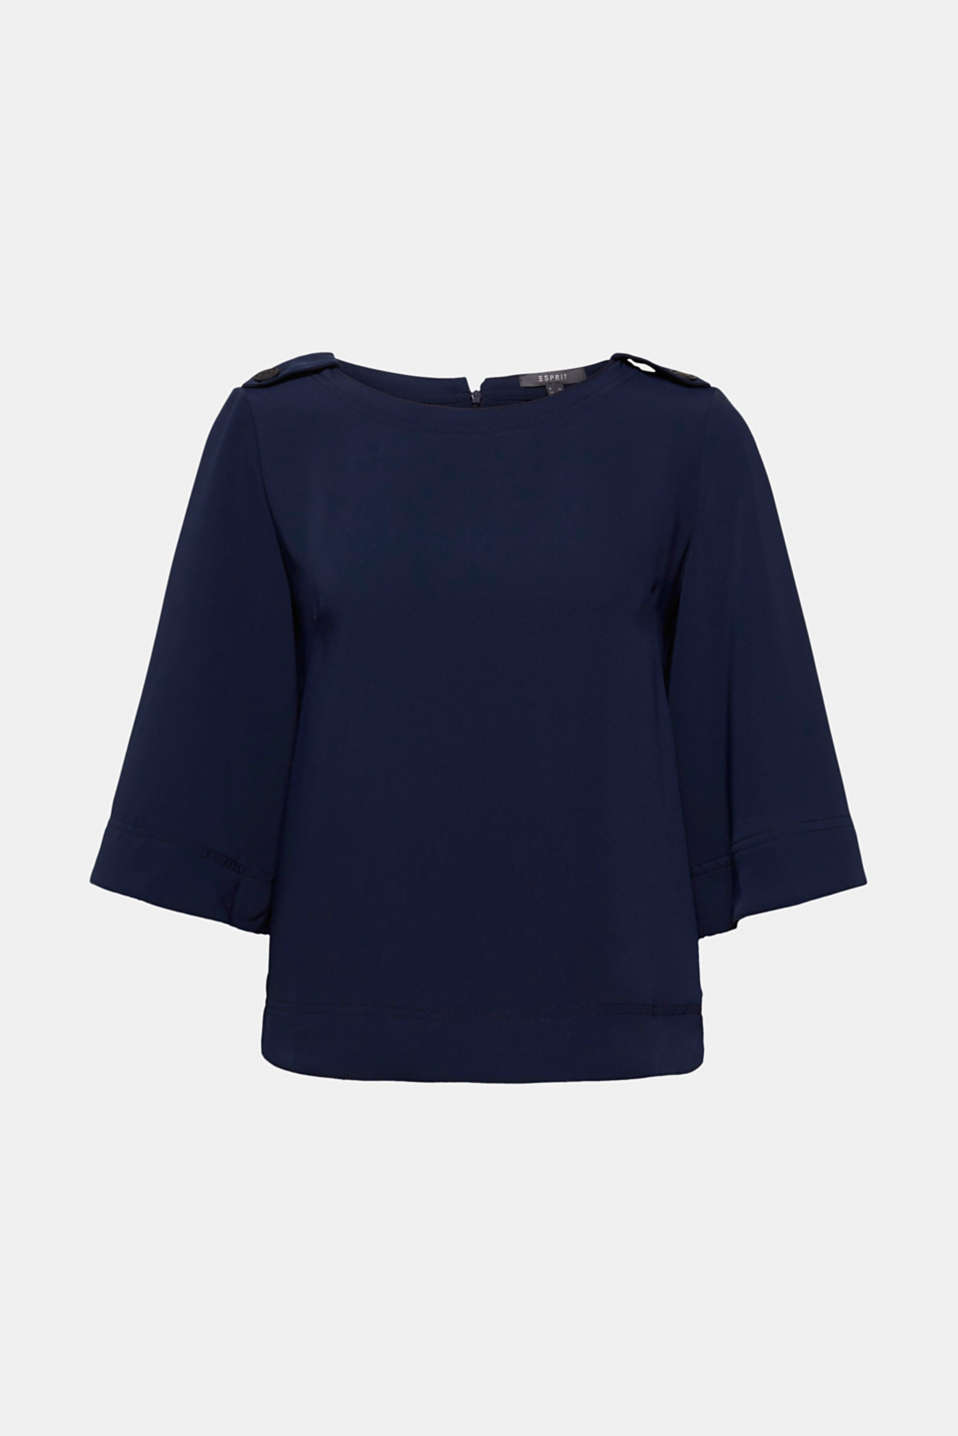 Spice up a skirt or trousers with this slightly boxy, flowing blouse with cropped, flared sleeves, contrast stitching and button-fastening epaulettes!